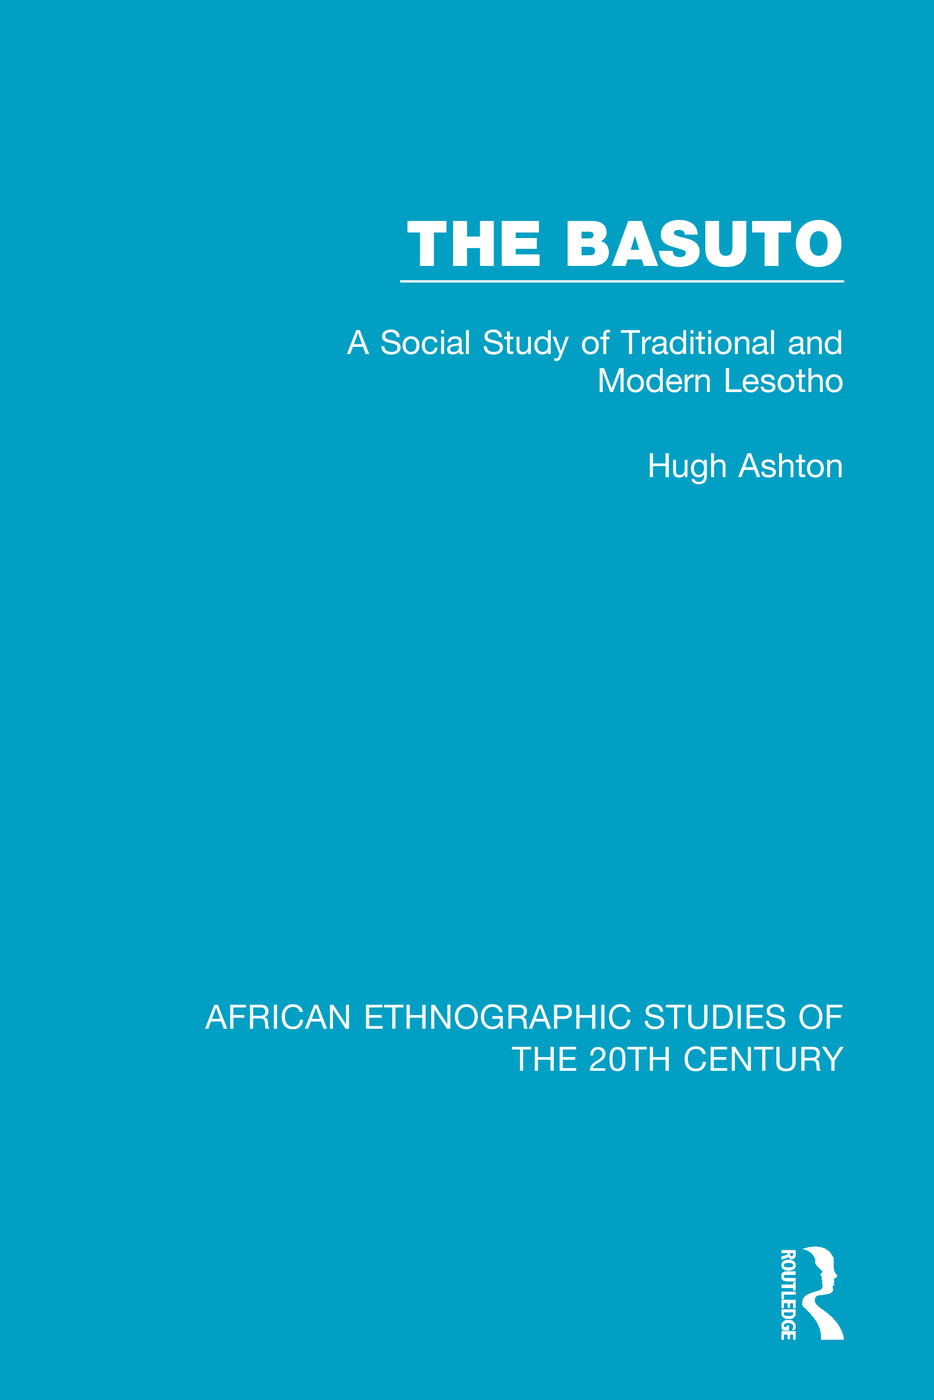 The Basuto: A Social Study of Traditional and Modern Lesotho book cover